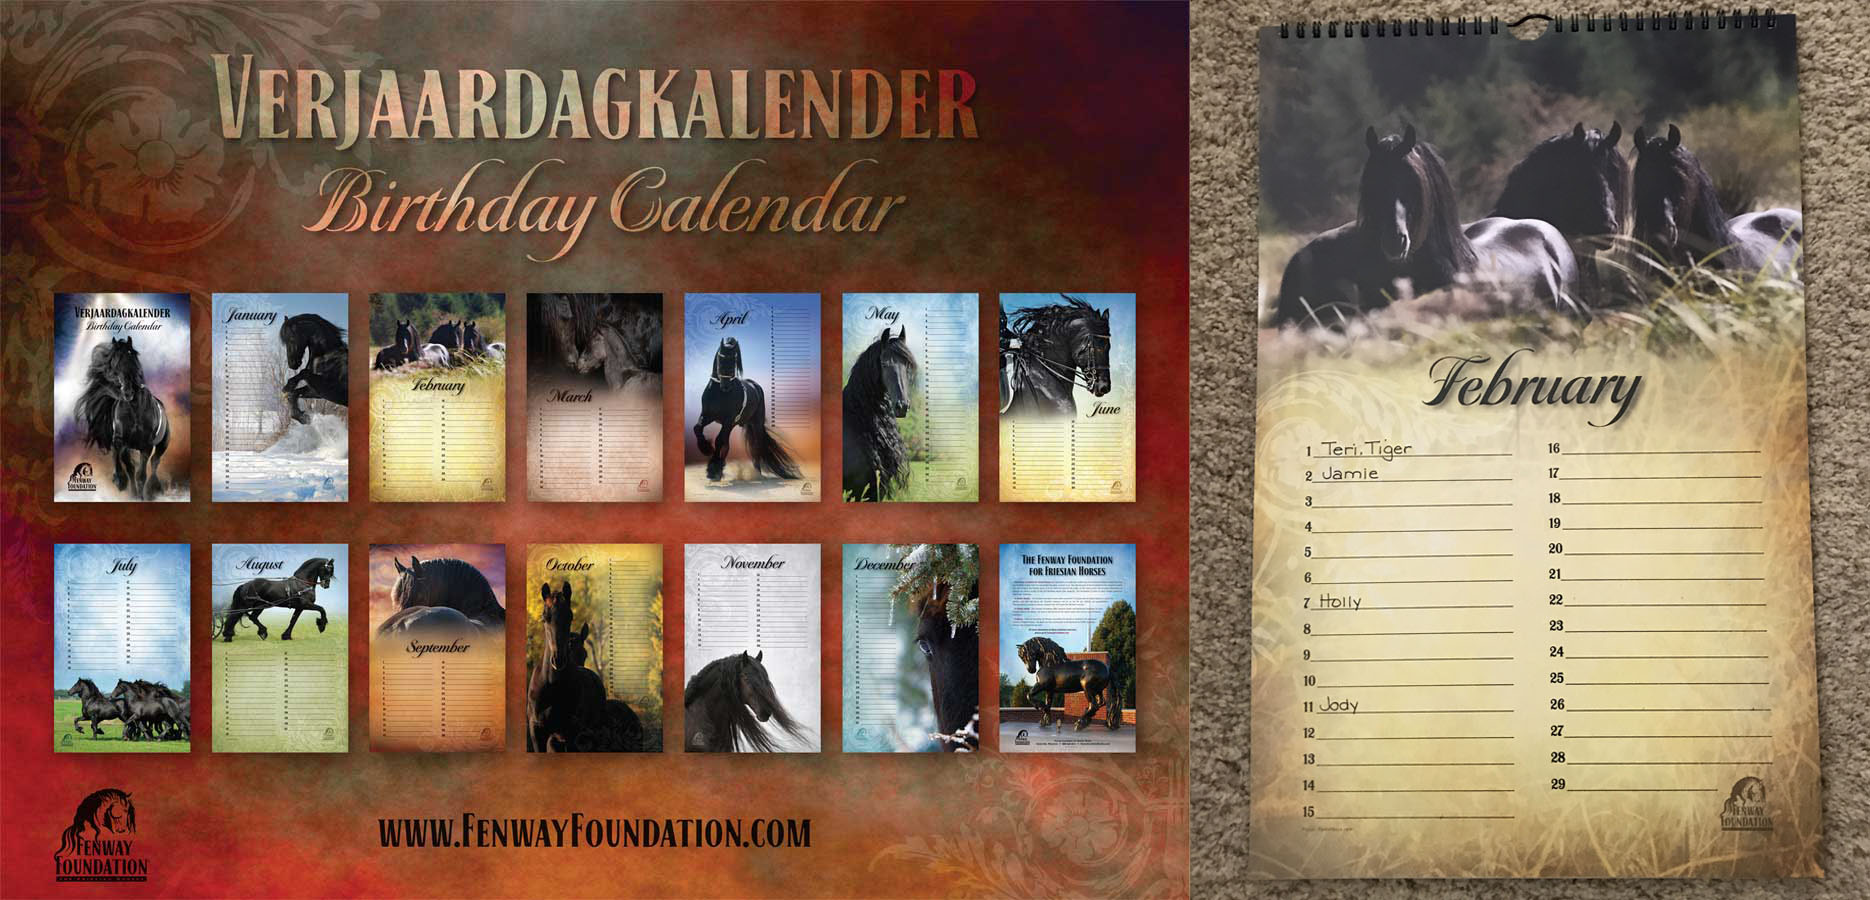 Verjaardagkalendar / Dutch Birthday Calendar.